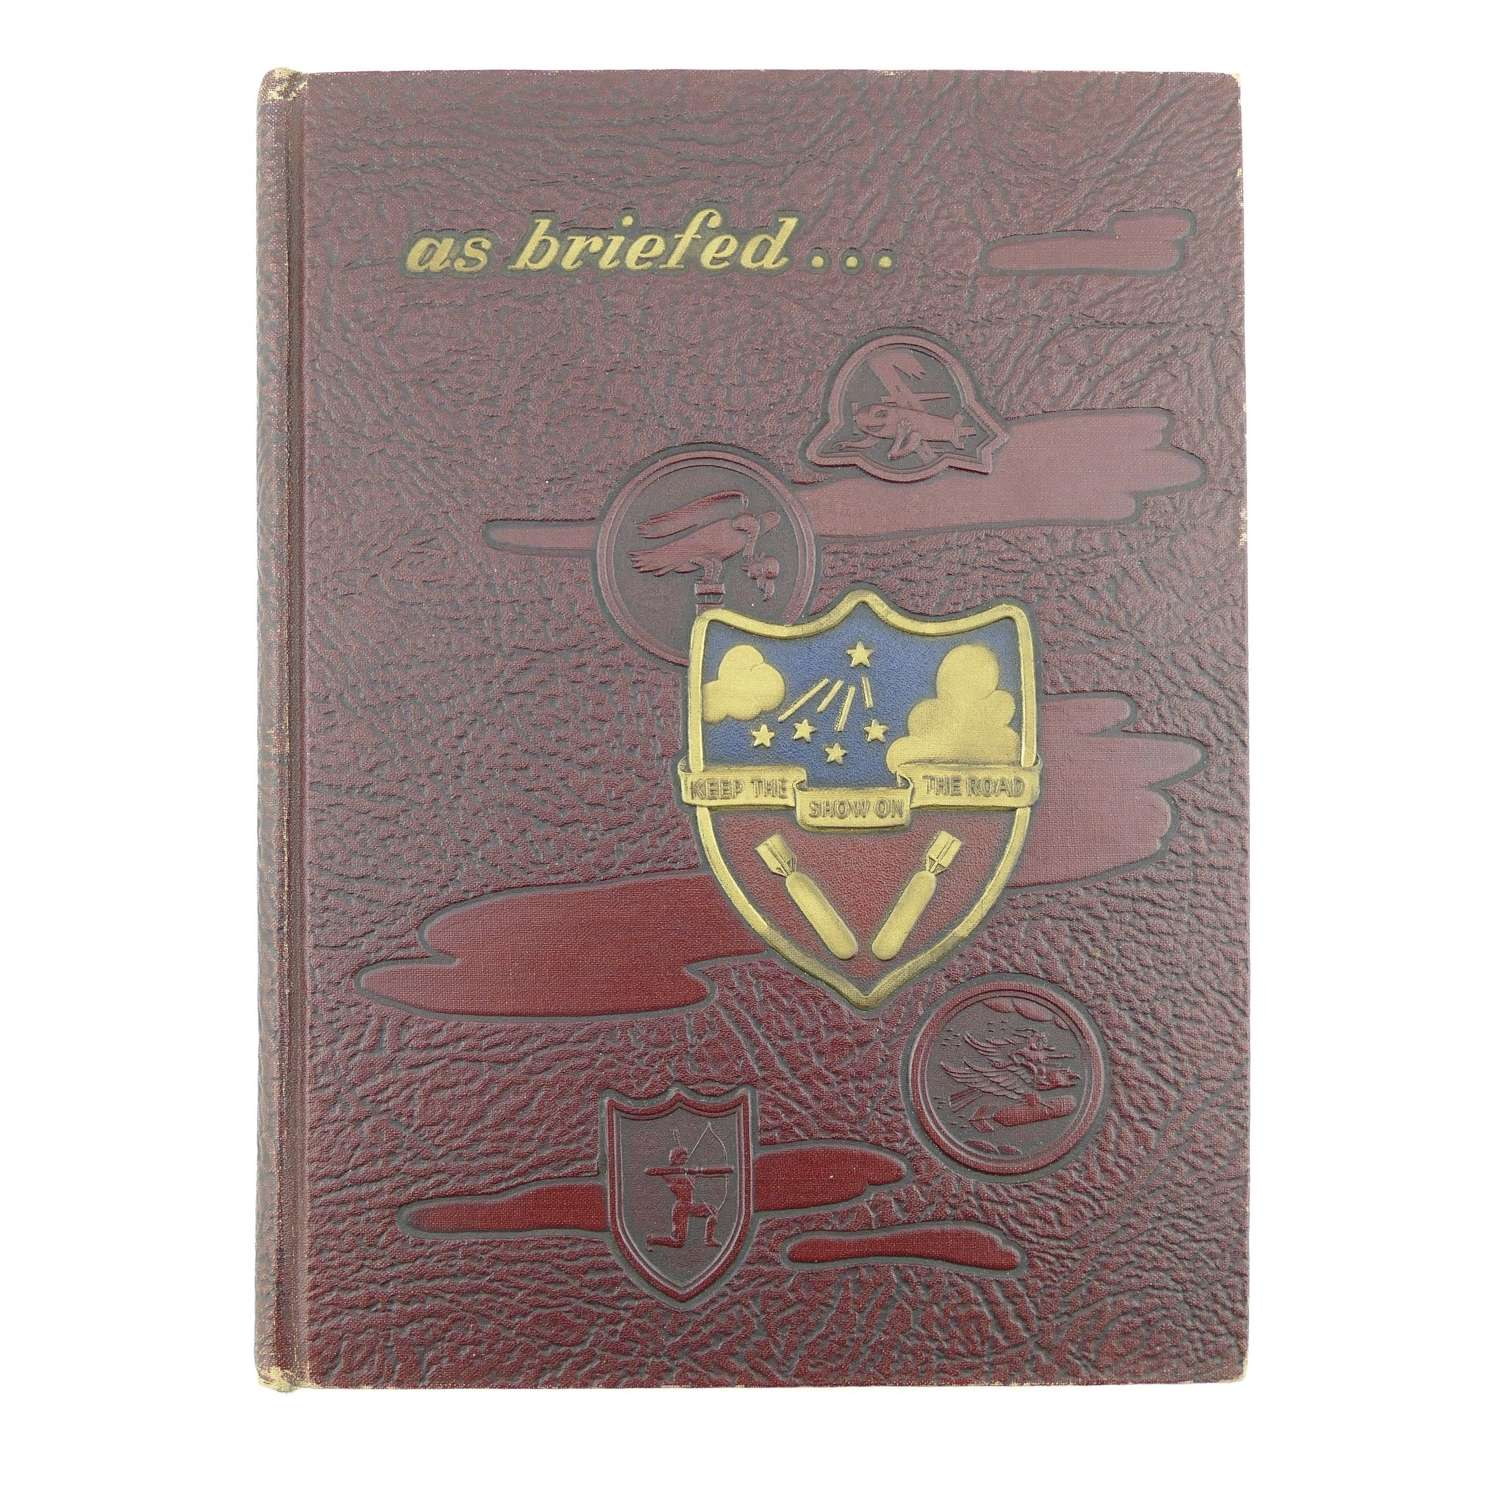 'As Briefed' - 384th Bombardment Group history